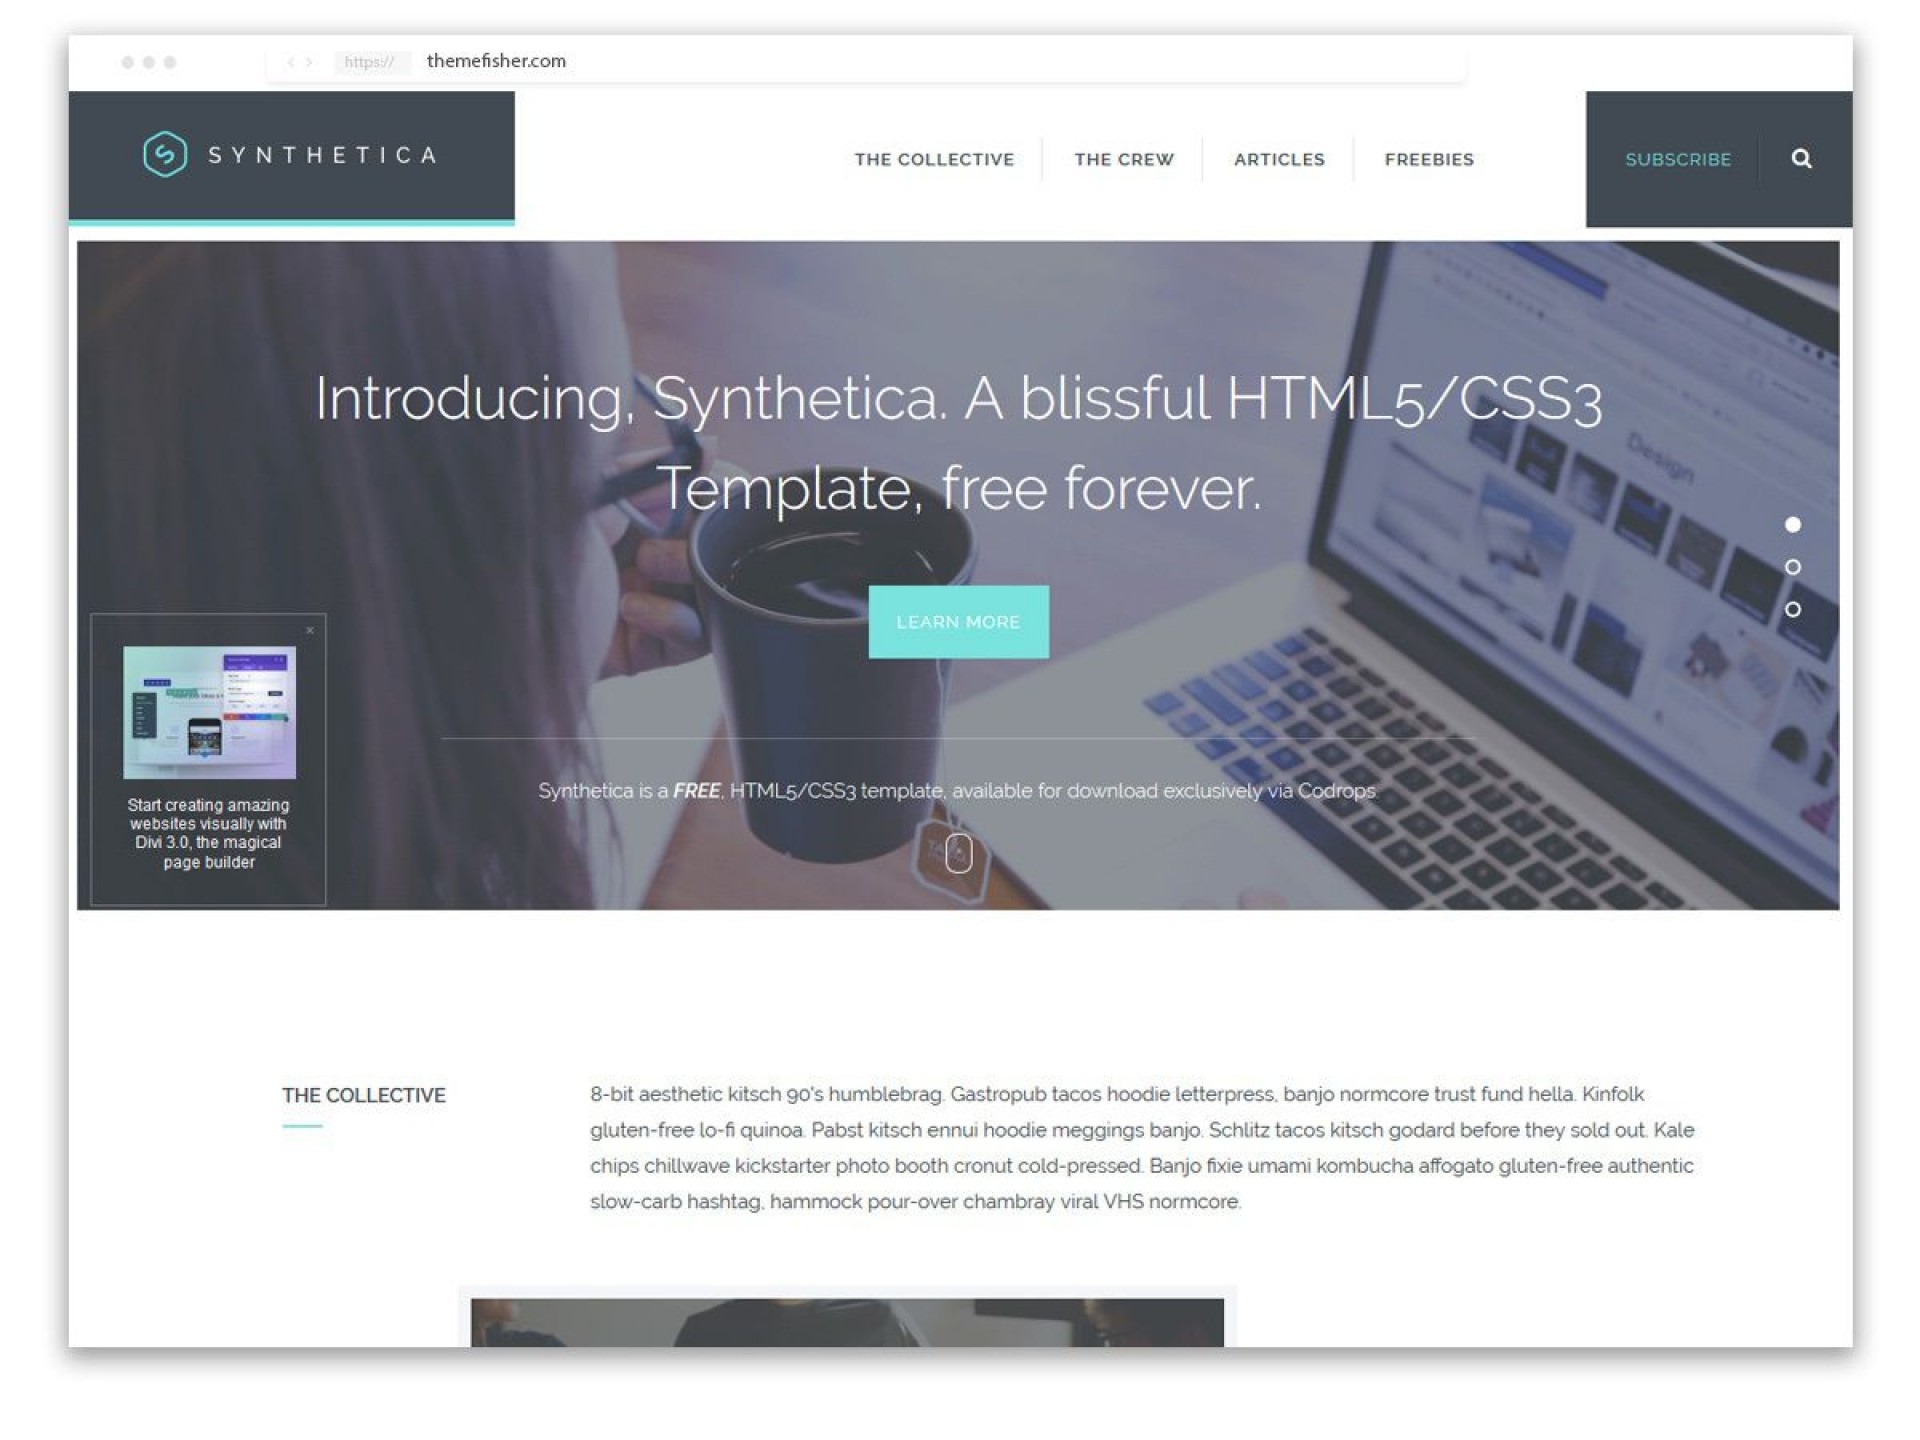 008 Imposing Download Web Template Html5 Highest Clarity  Photography Website Free Logistic Busines1920